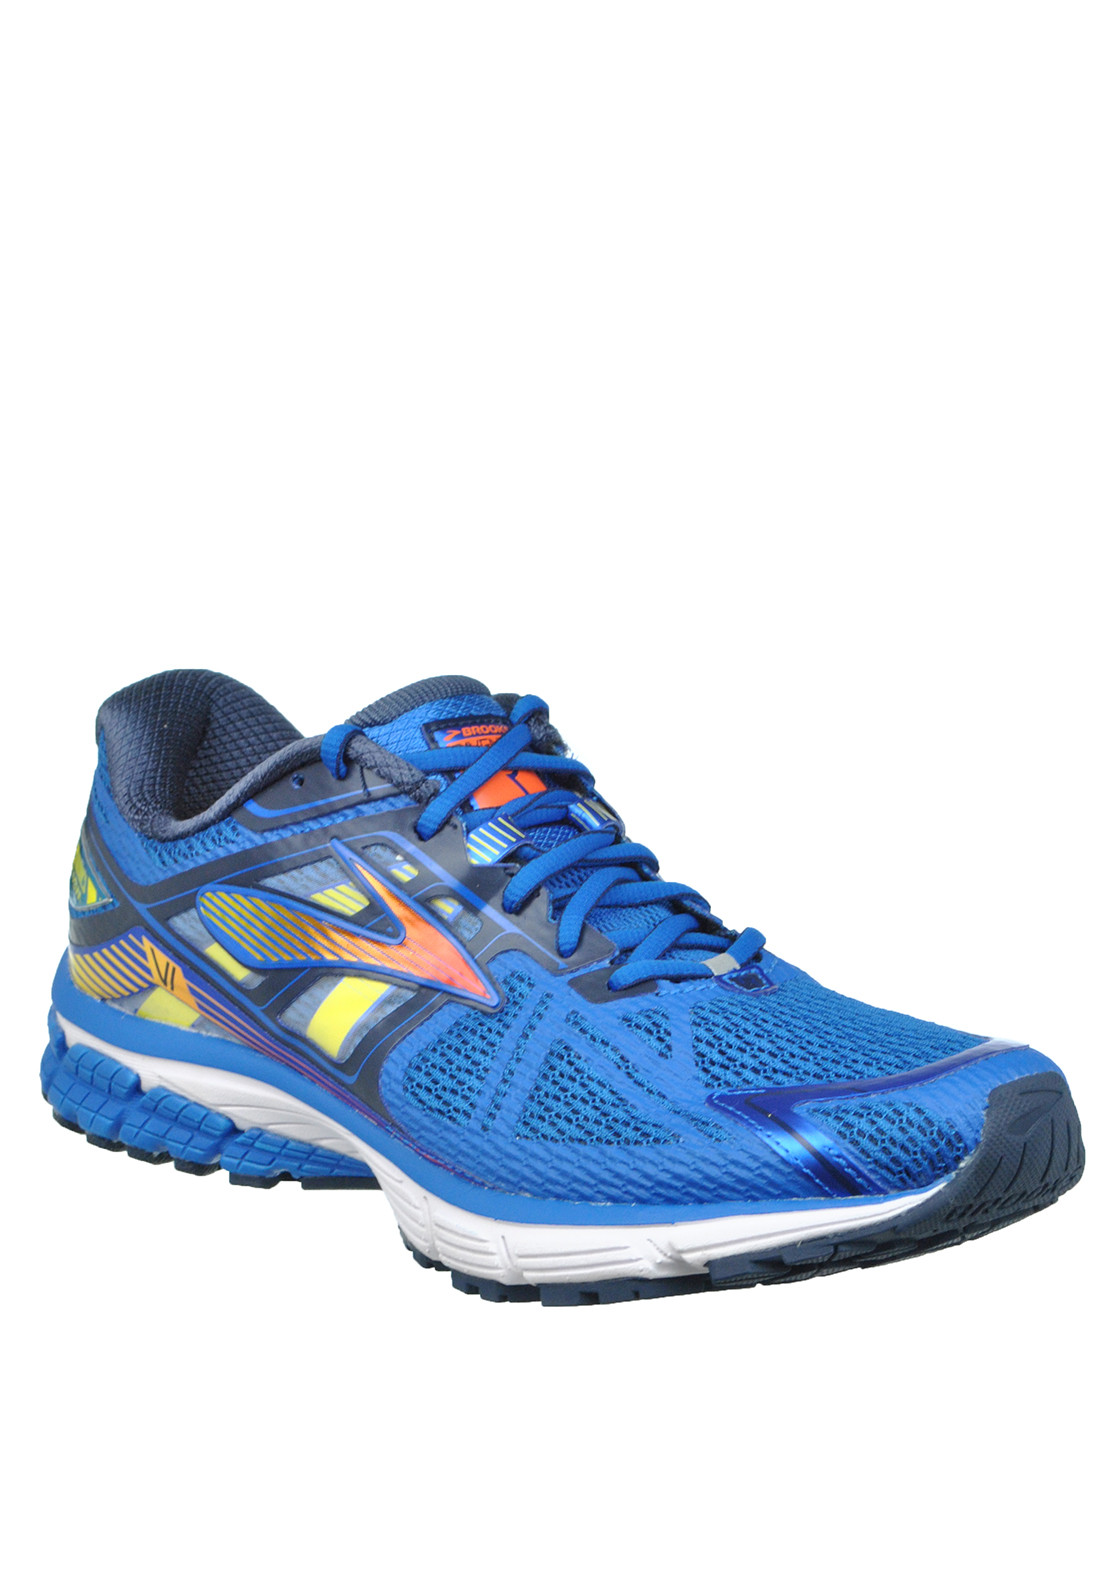 Brooks Mens Ravenna 6 Runner, Blue